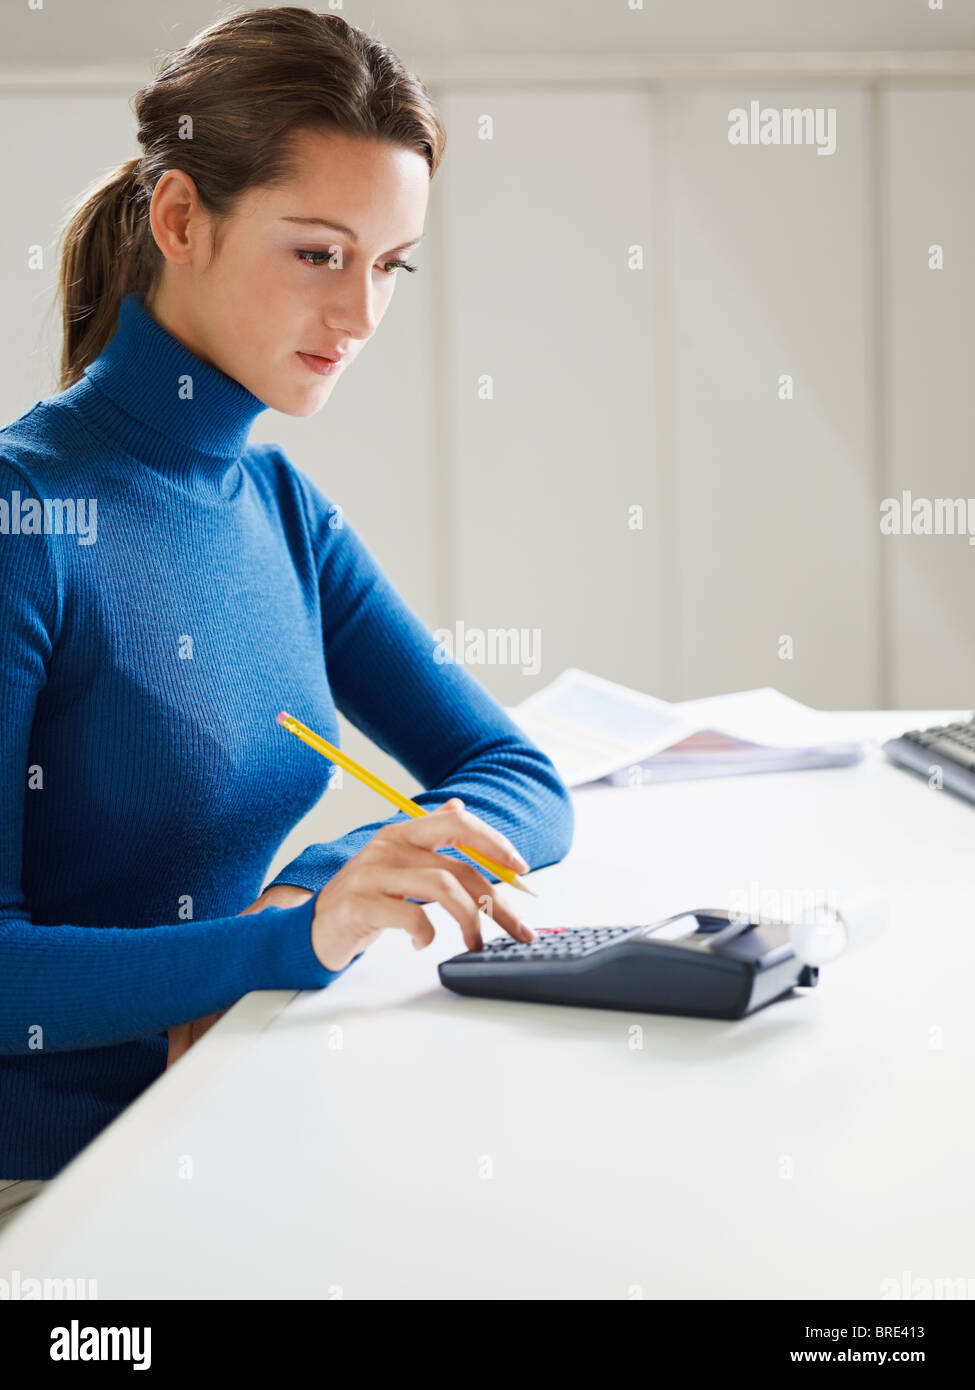 woman using calculator in office Stock Photo